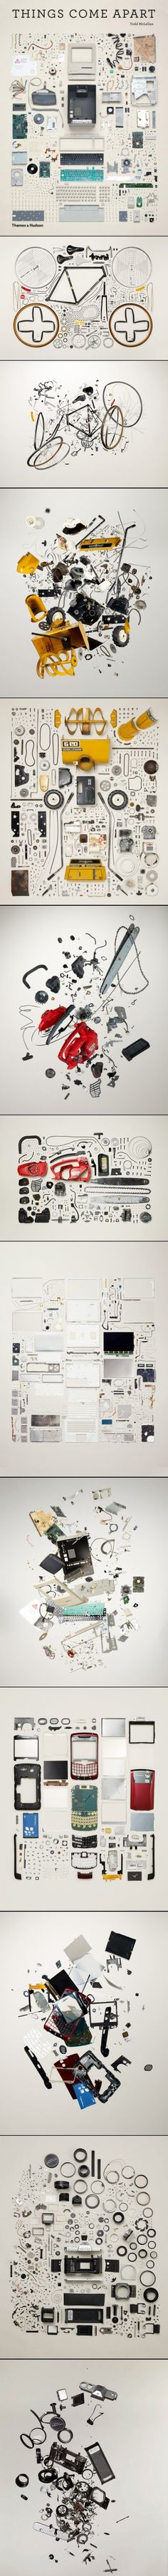 114 Best Exploded Images On Pinterest Design Process Dibujo And Honda 125 Atv Wiring Diagram Together With Circuit Board Tree Things Come Apart A Teardown Manual For Modern Living Todd Mclellan 0884724349610 Amazoncom Books